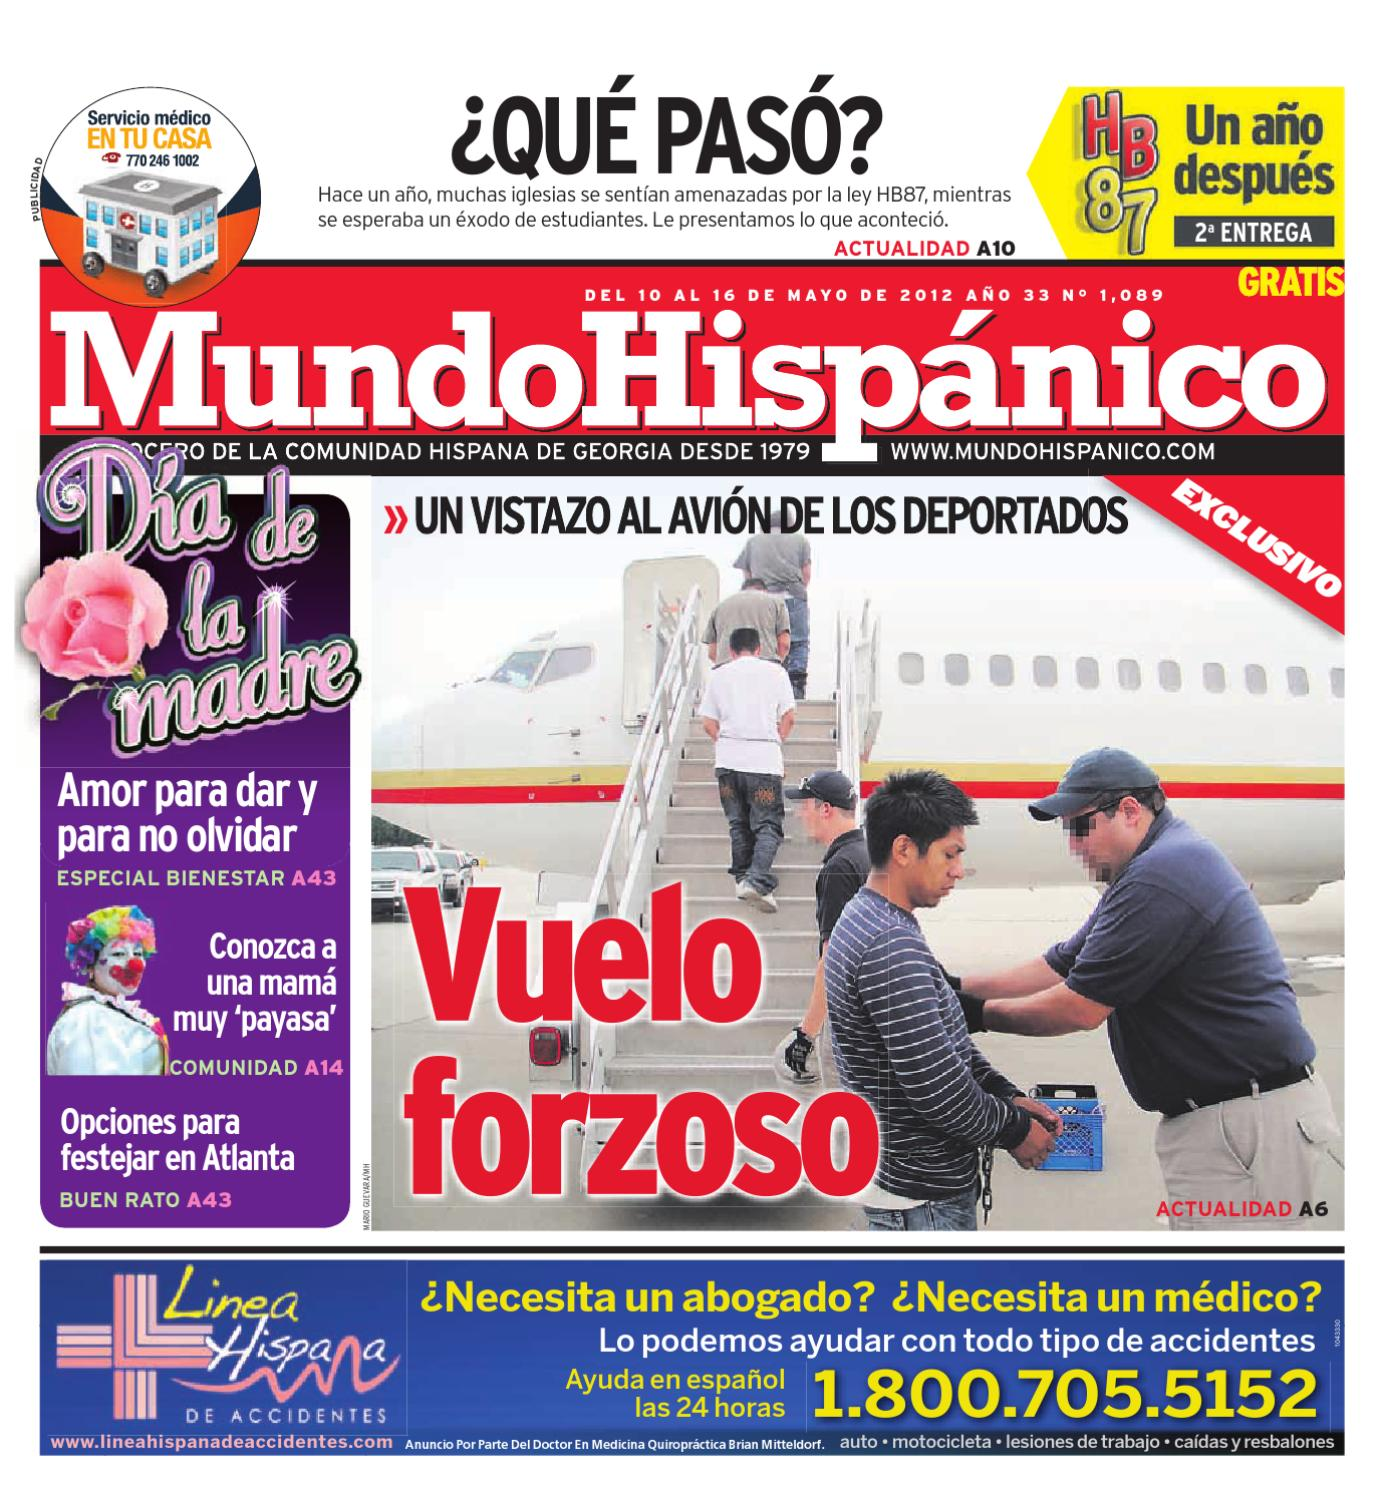 Mundo Hispanico 05-10-12 by MUNDO HISPANICO - issuu